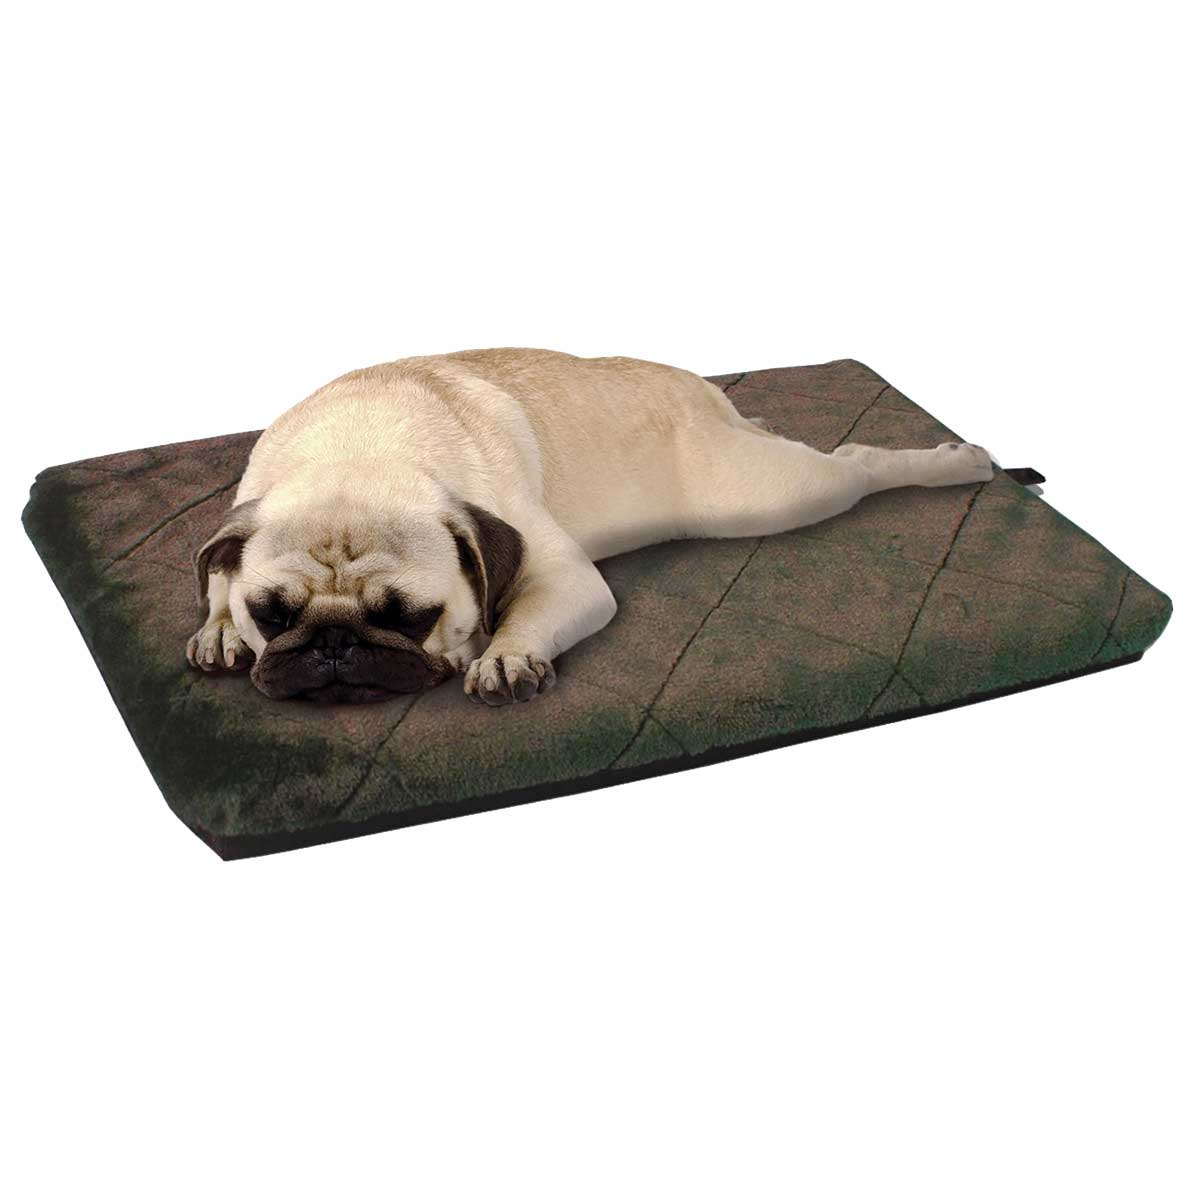 26 inches by 41 inches by 2 inches - Furhaven Nap Crate Orthopedic Mats in Brown Espresso